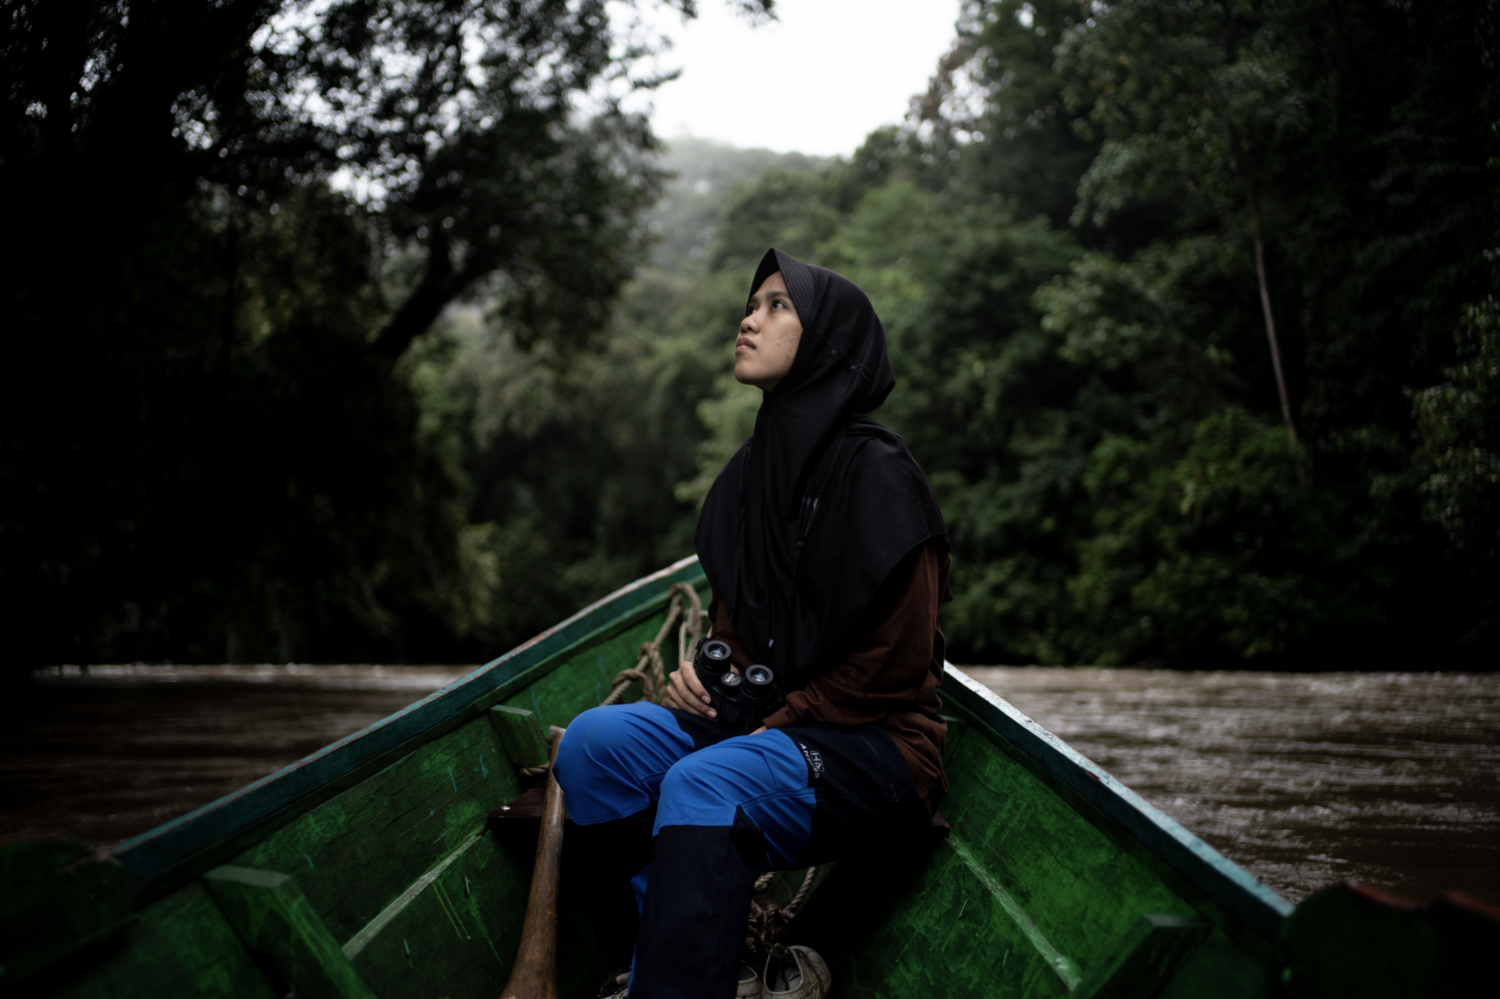 woman in Borneo on a canoe in the rainforest